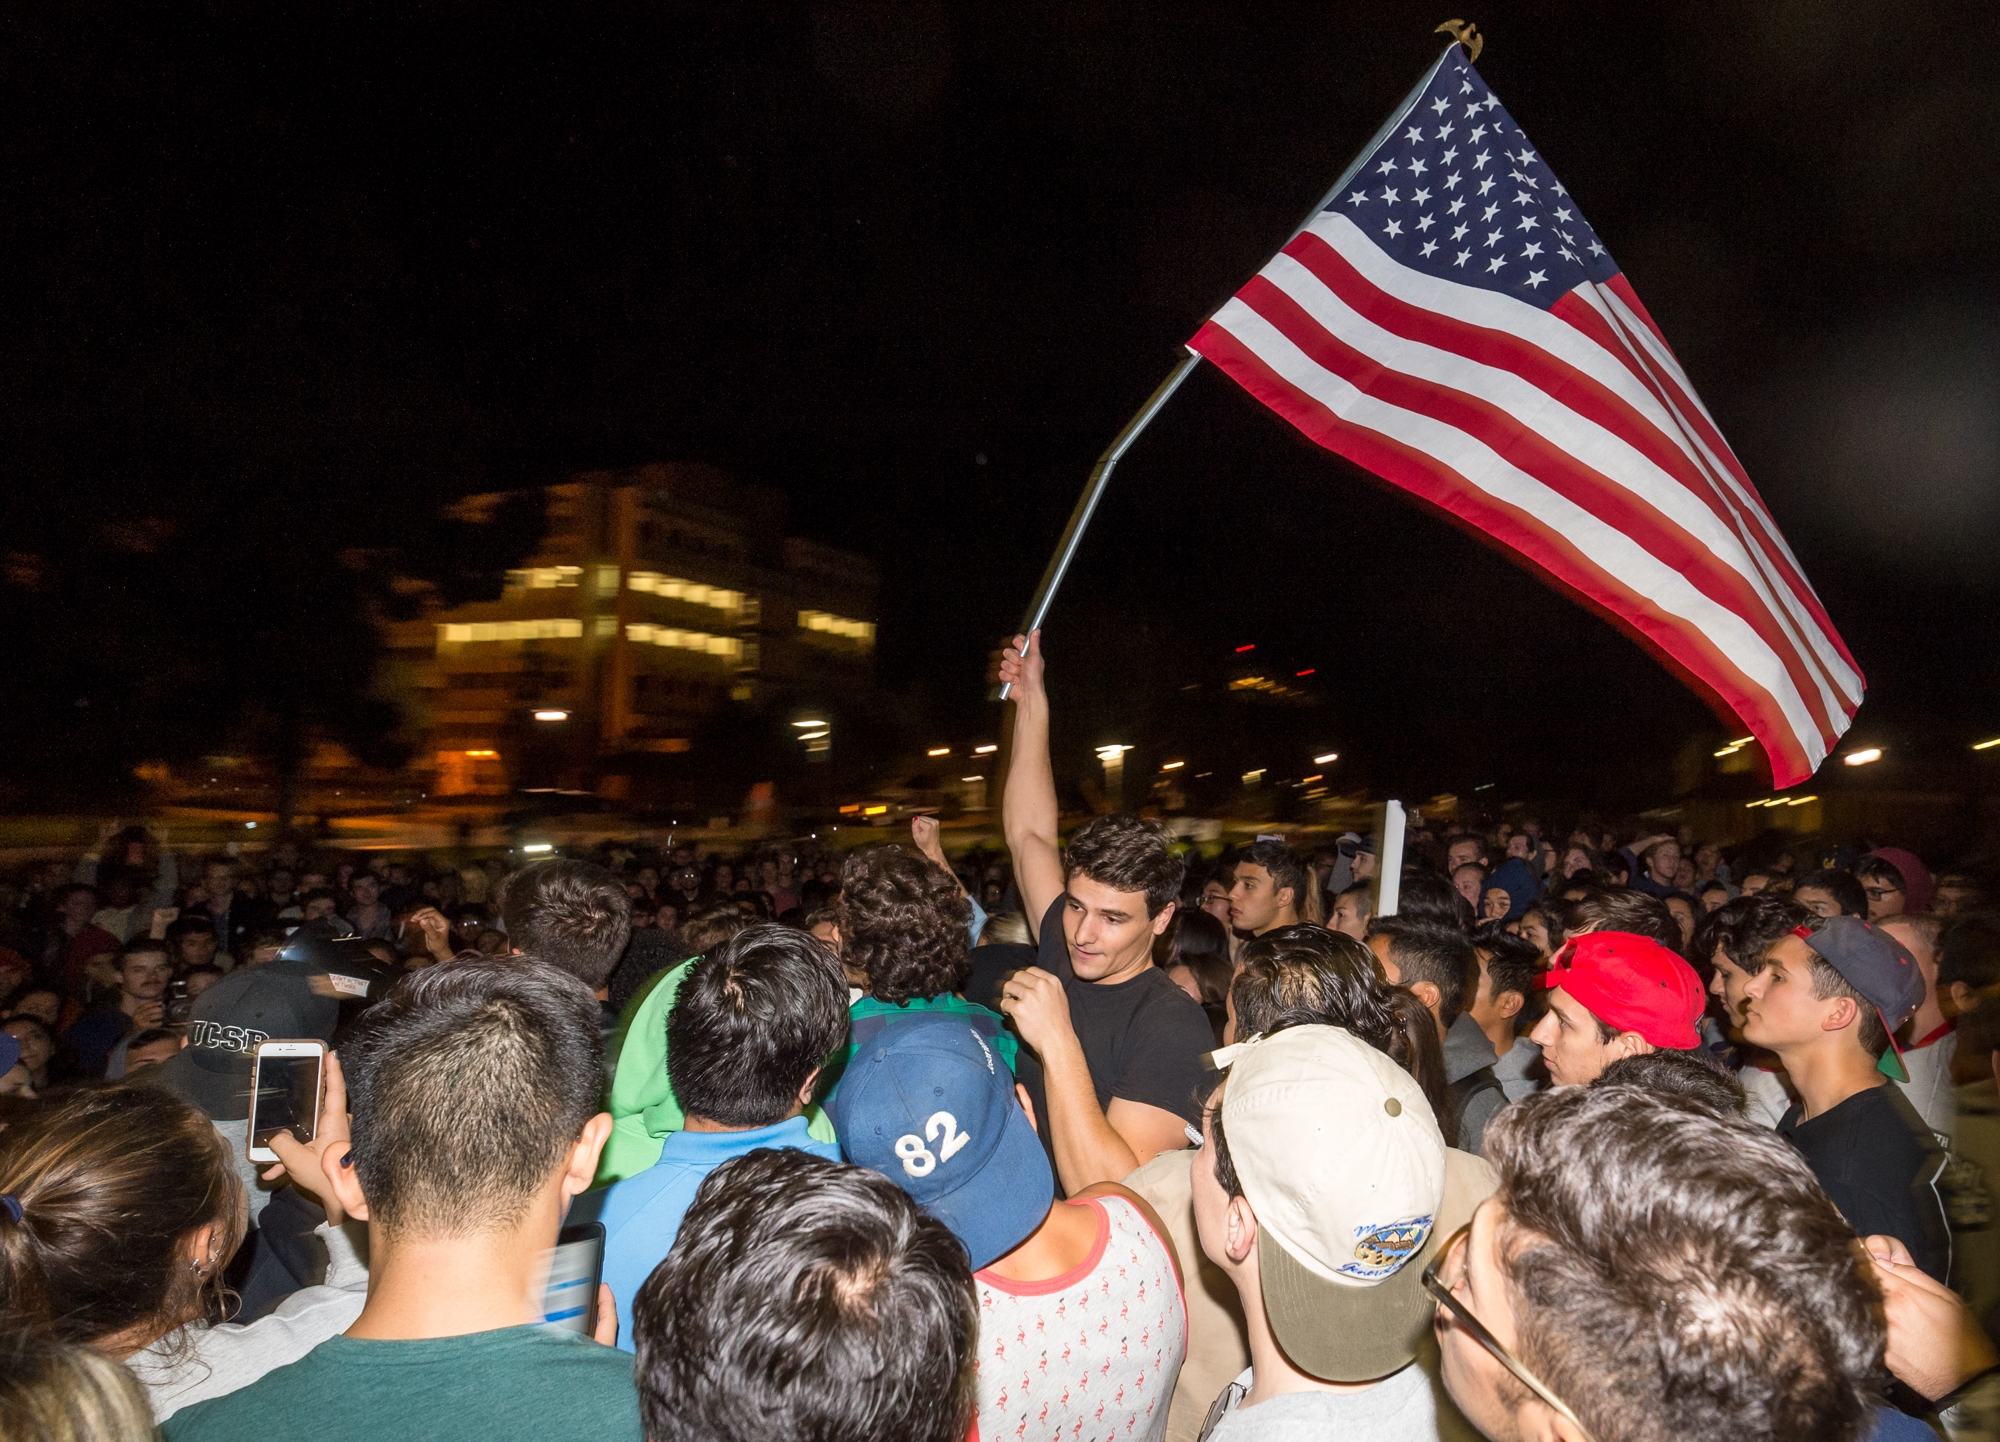 A Trump supporter waves a United States flag amidst a sea of students. Courtesy Kenneth Song